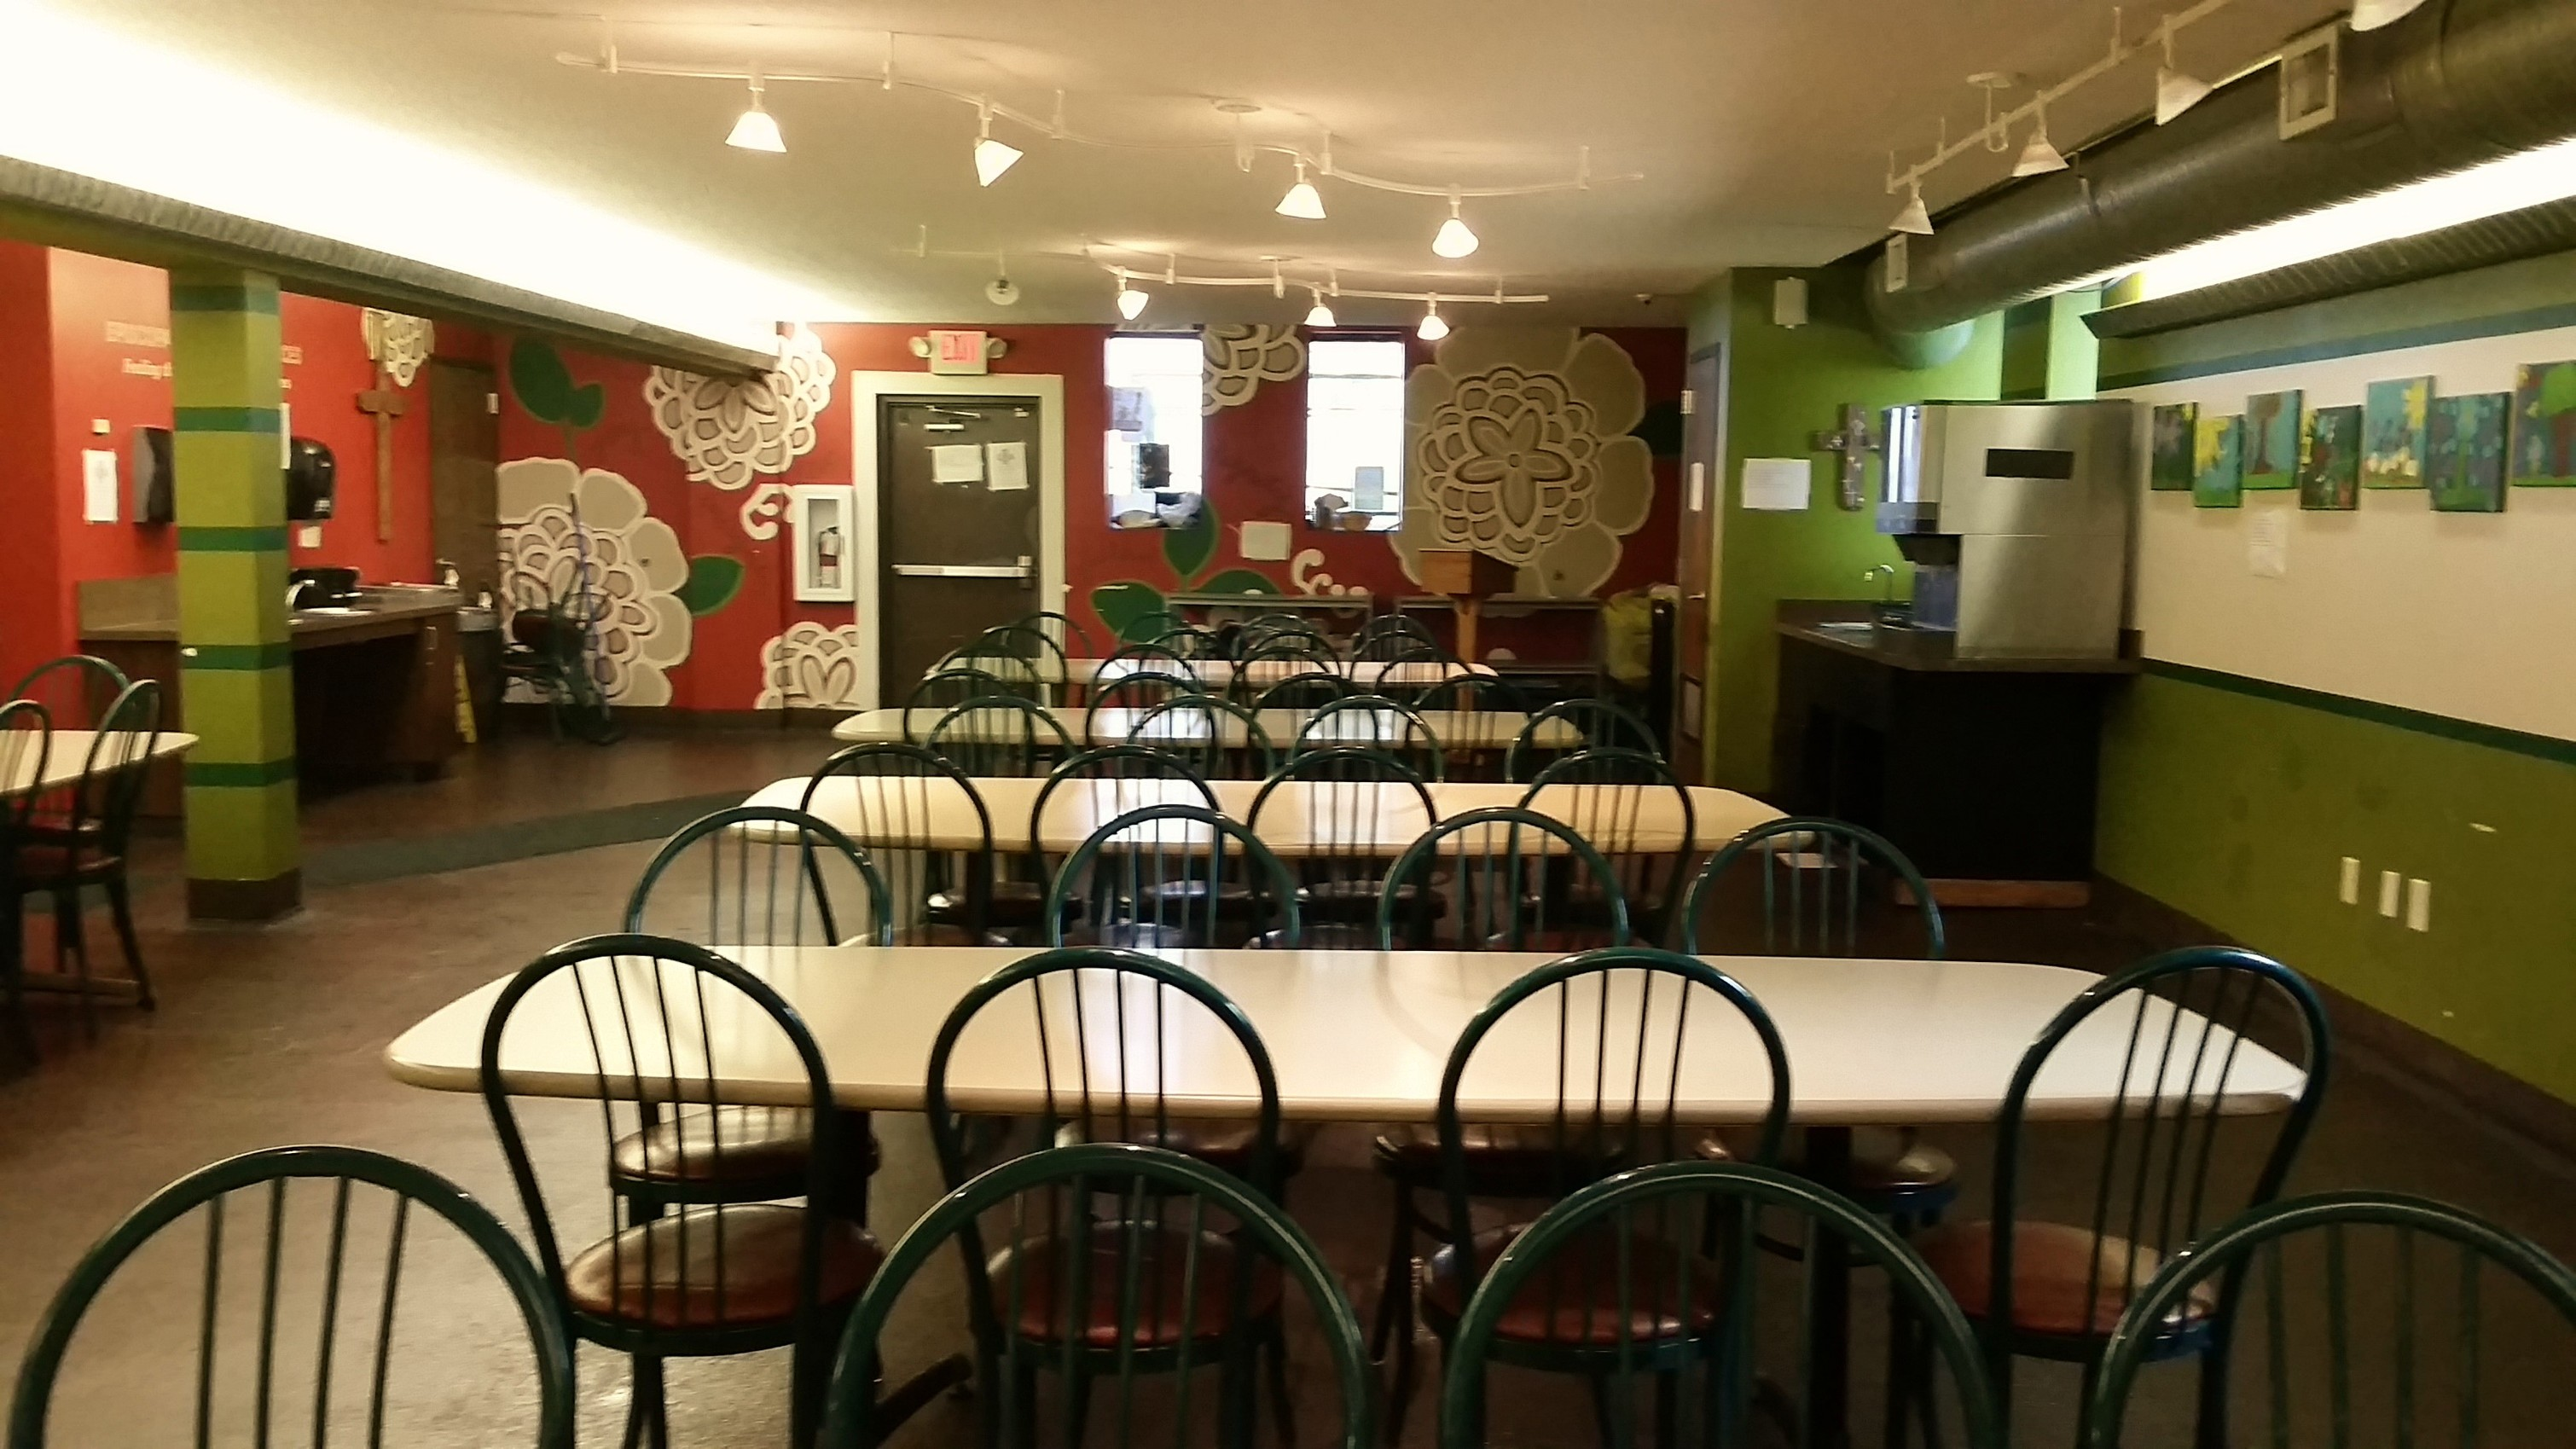 Kansas City Community Kitchen